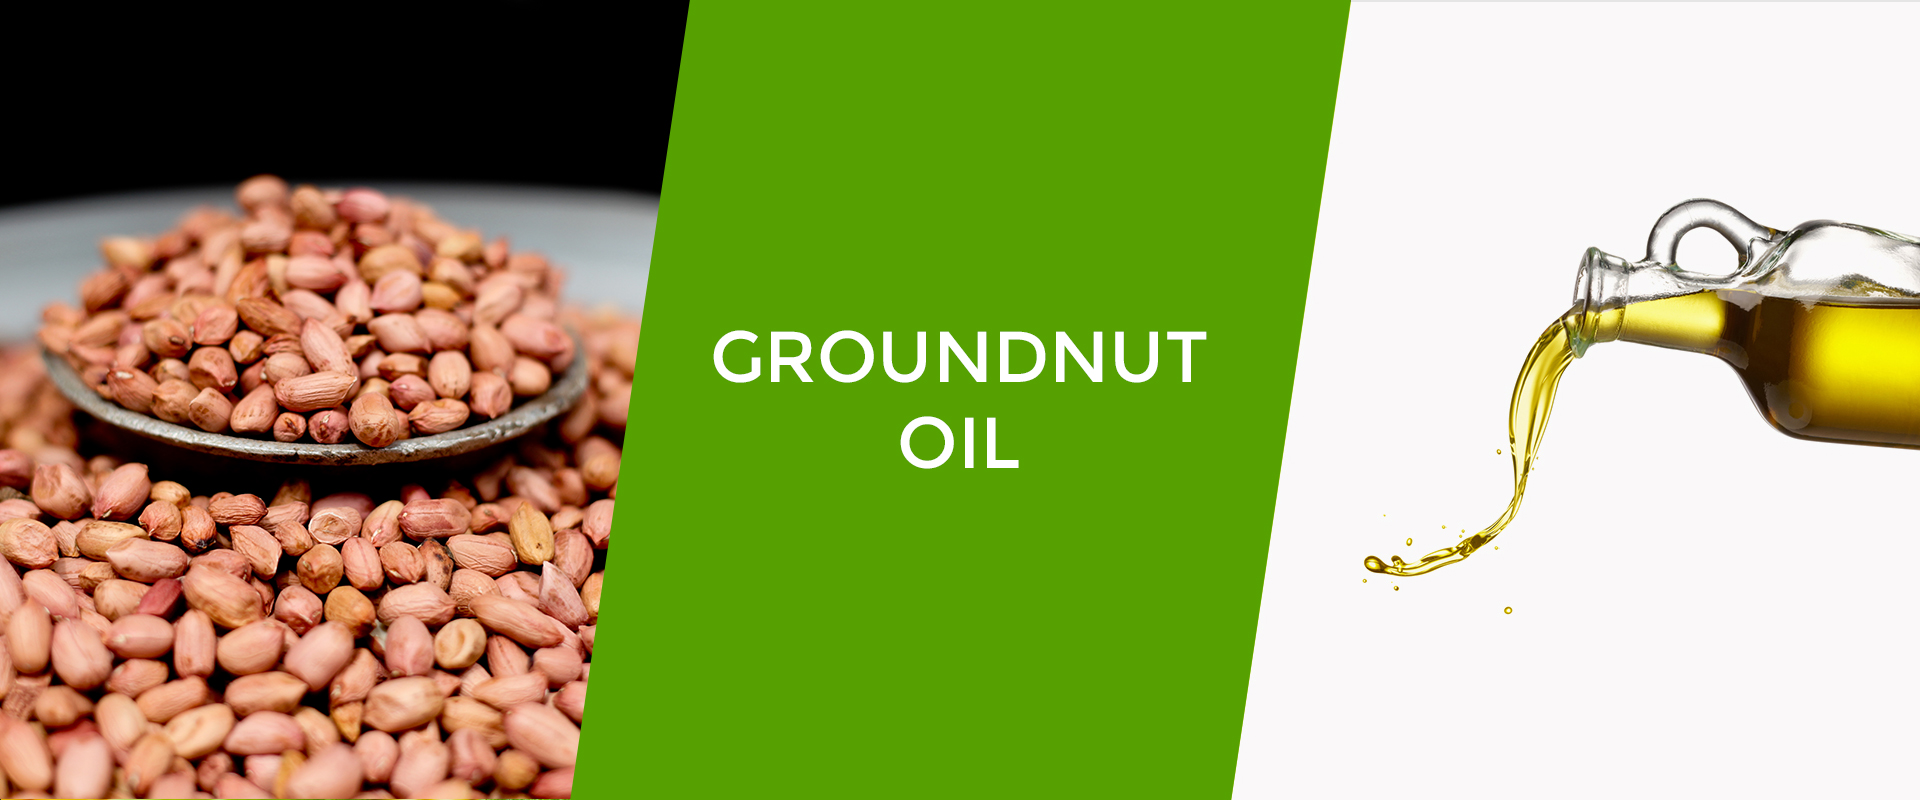 groundnut-oil-welcome-broker